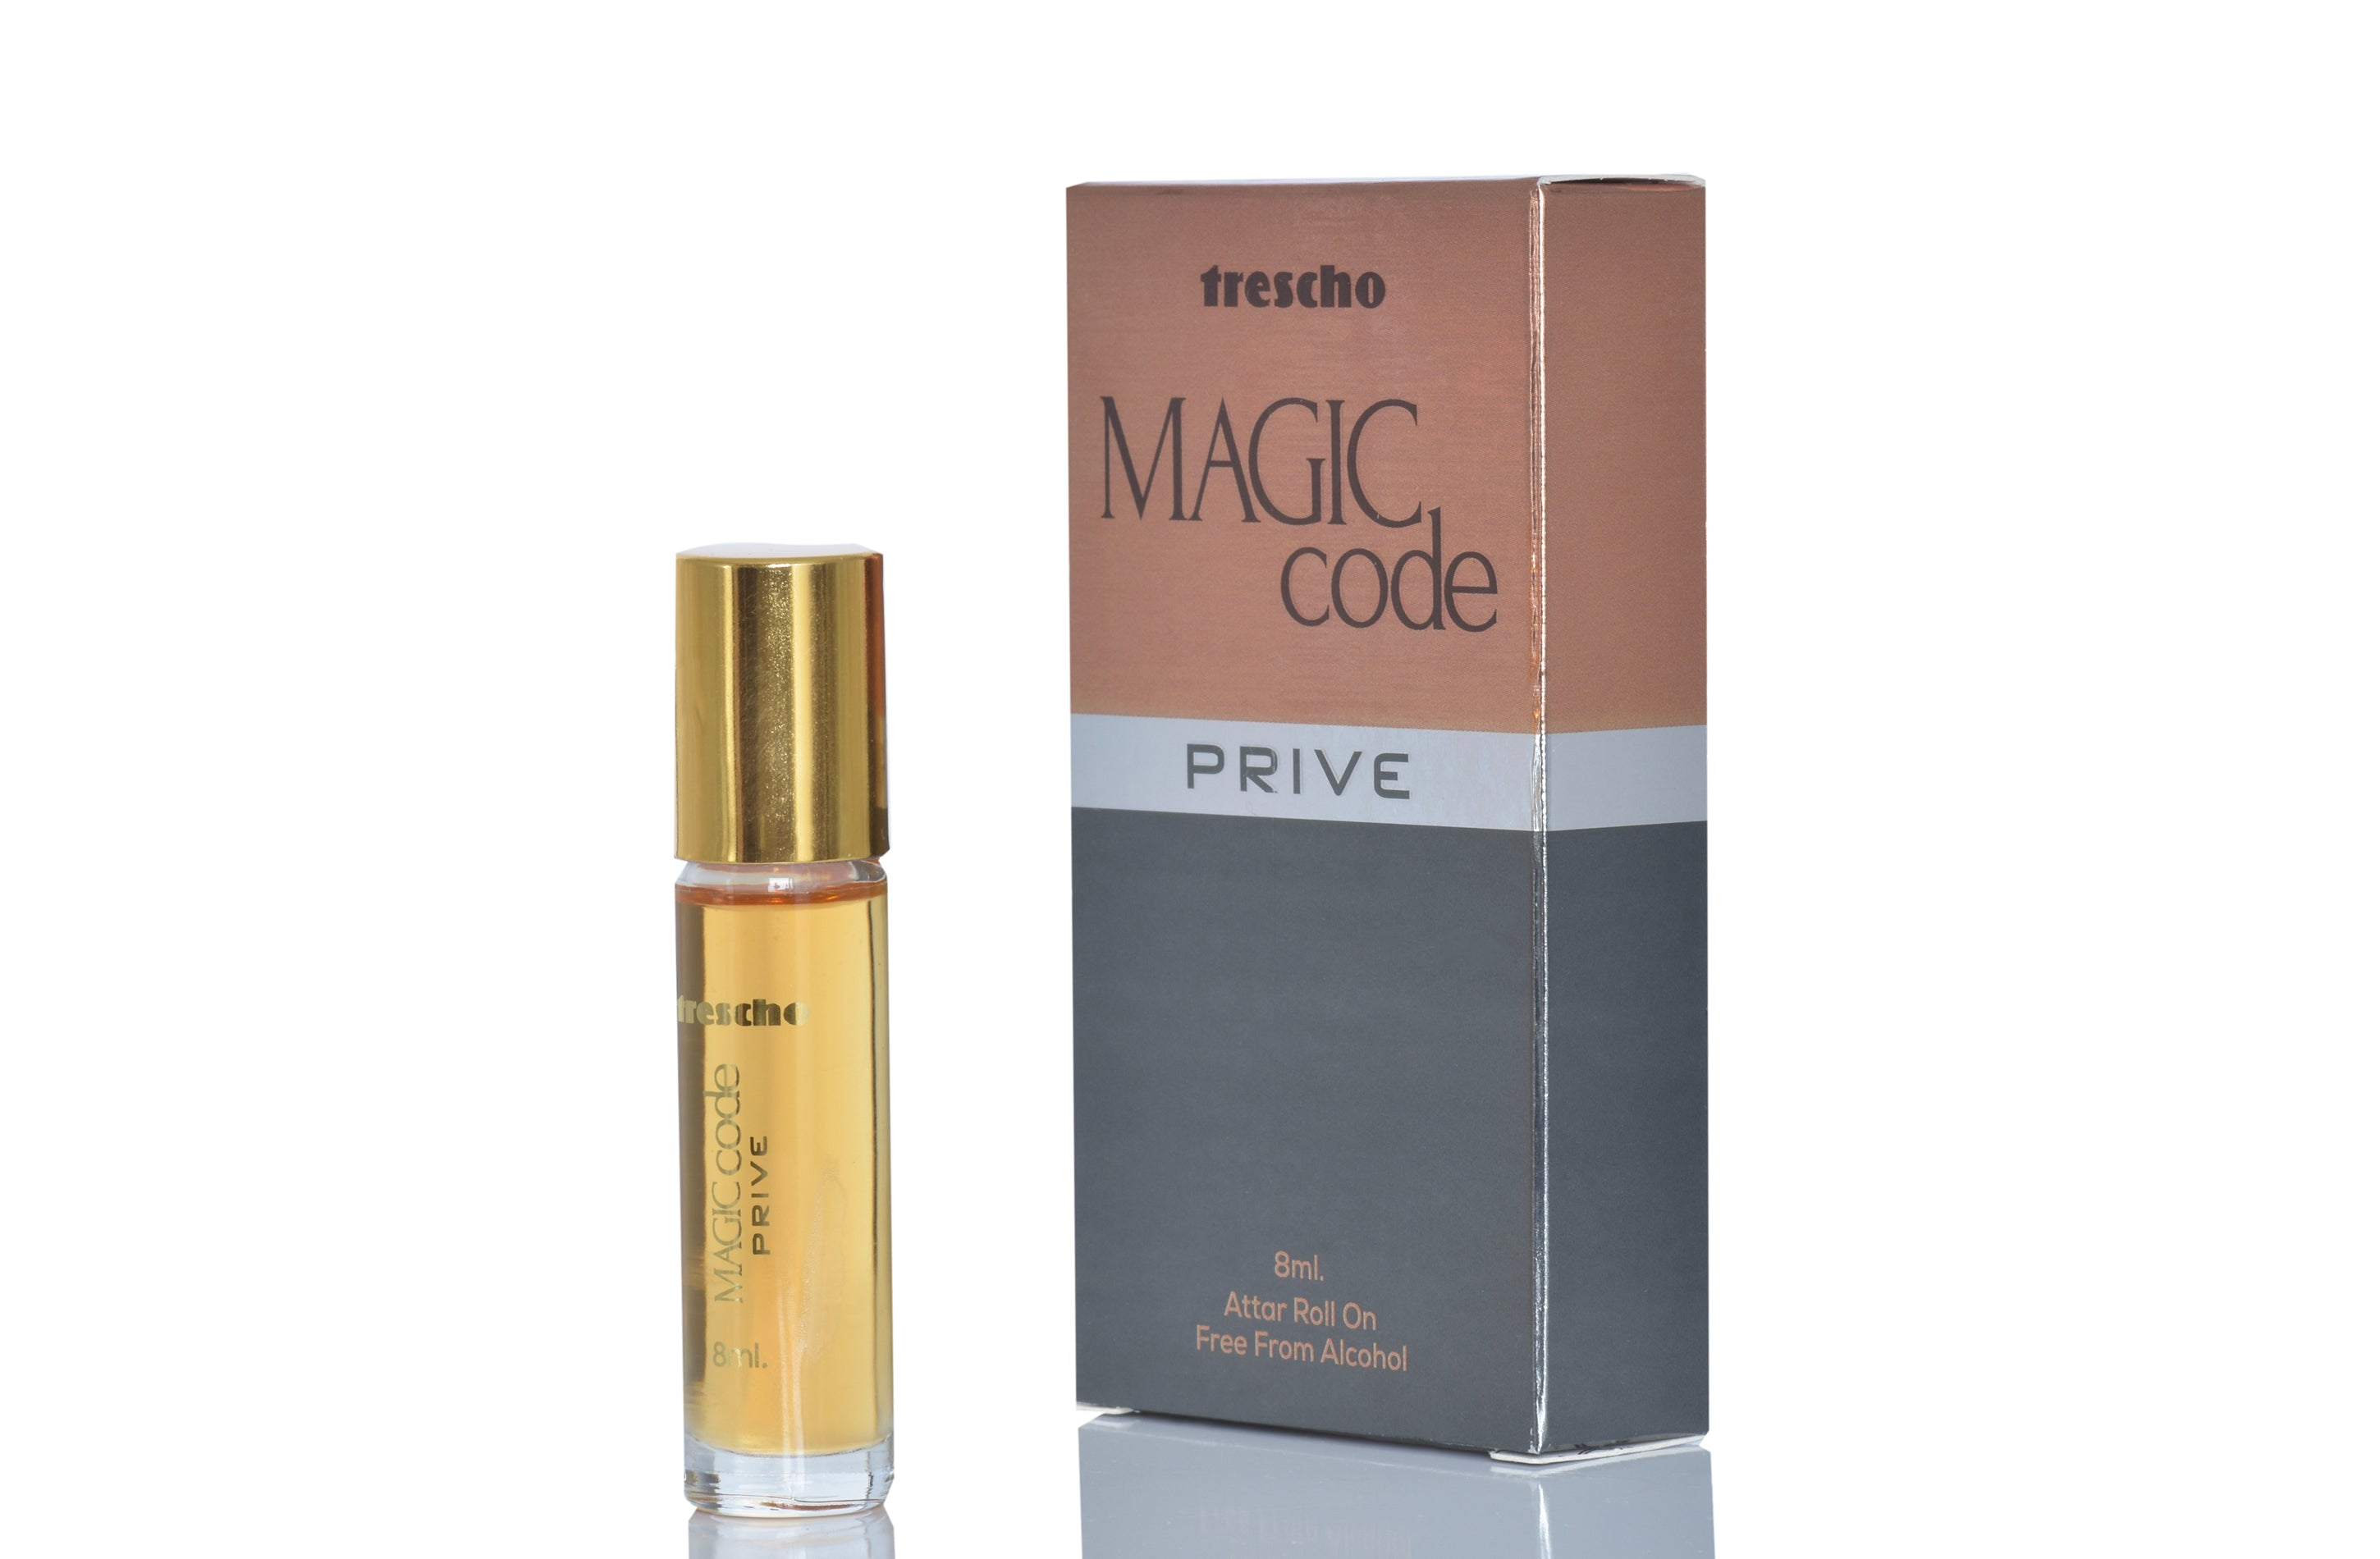 Magic Code Prive